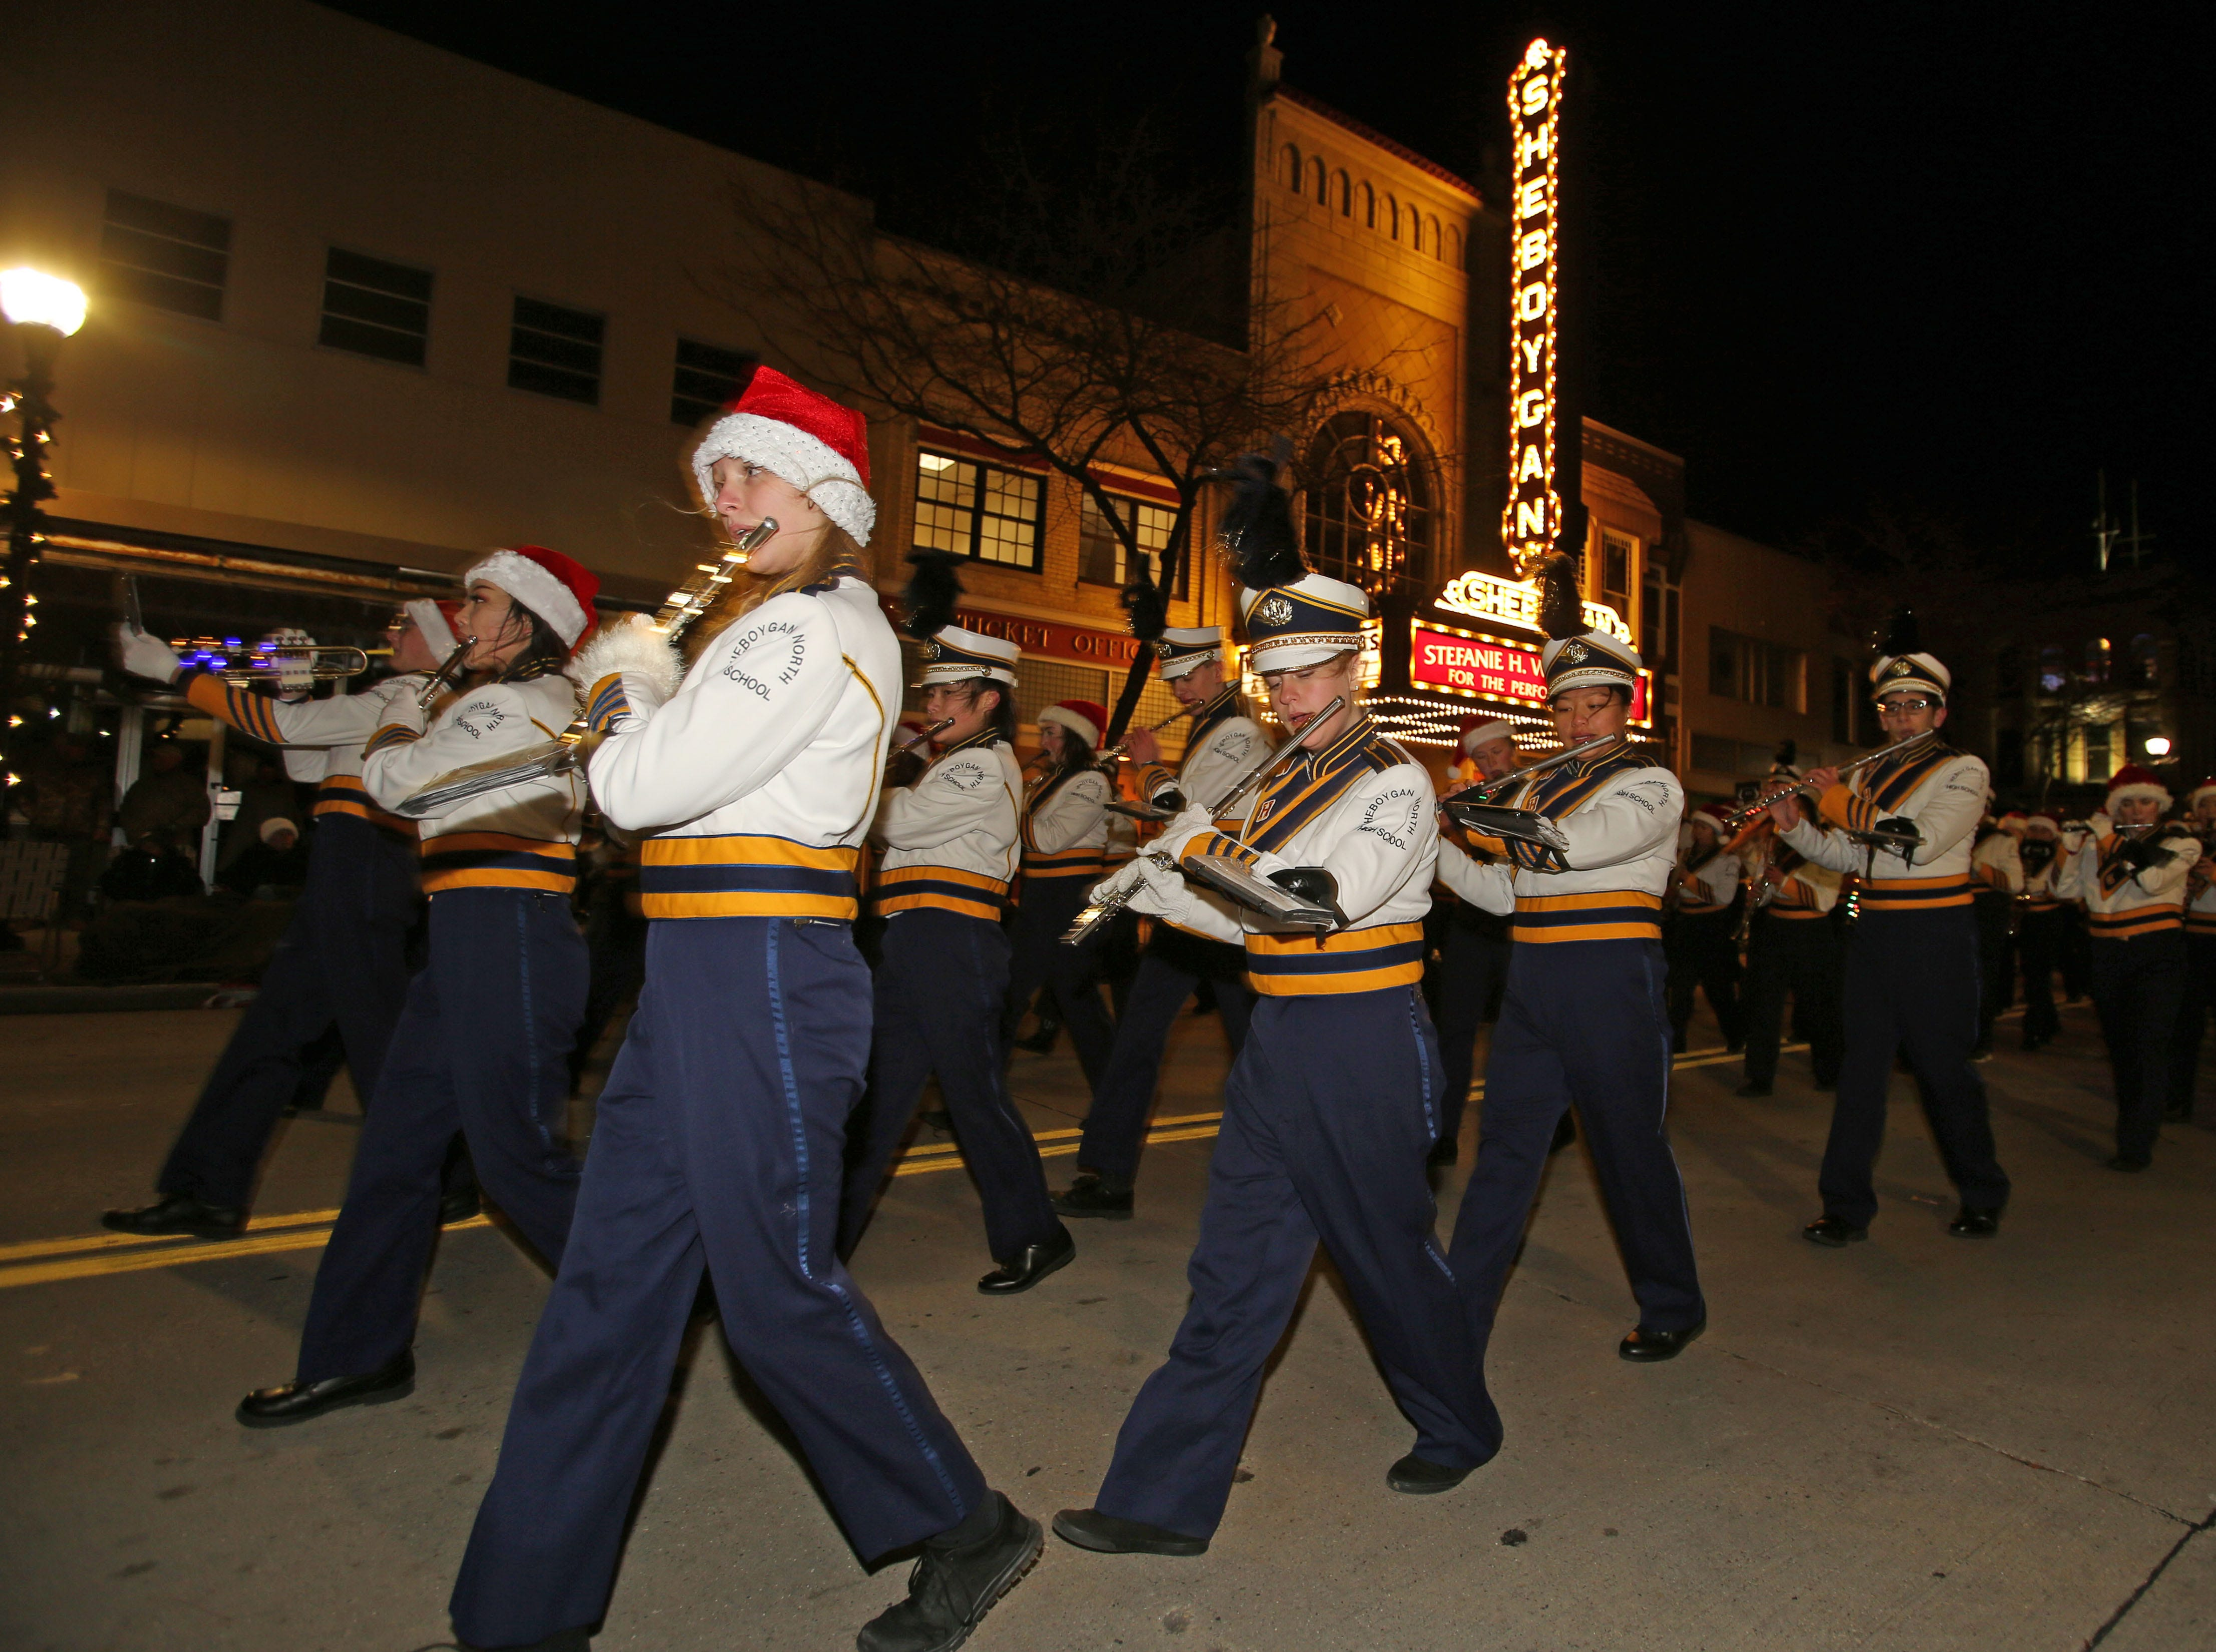 Sheboygan North's band performs during the 26th Annual Jaycees Holiday Parade, Sunday, November 25, 2018 in Sheboygan, Wis.